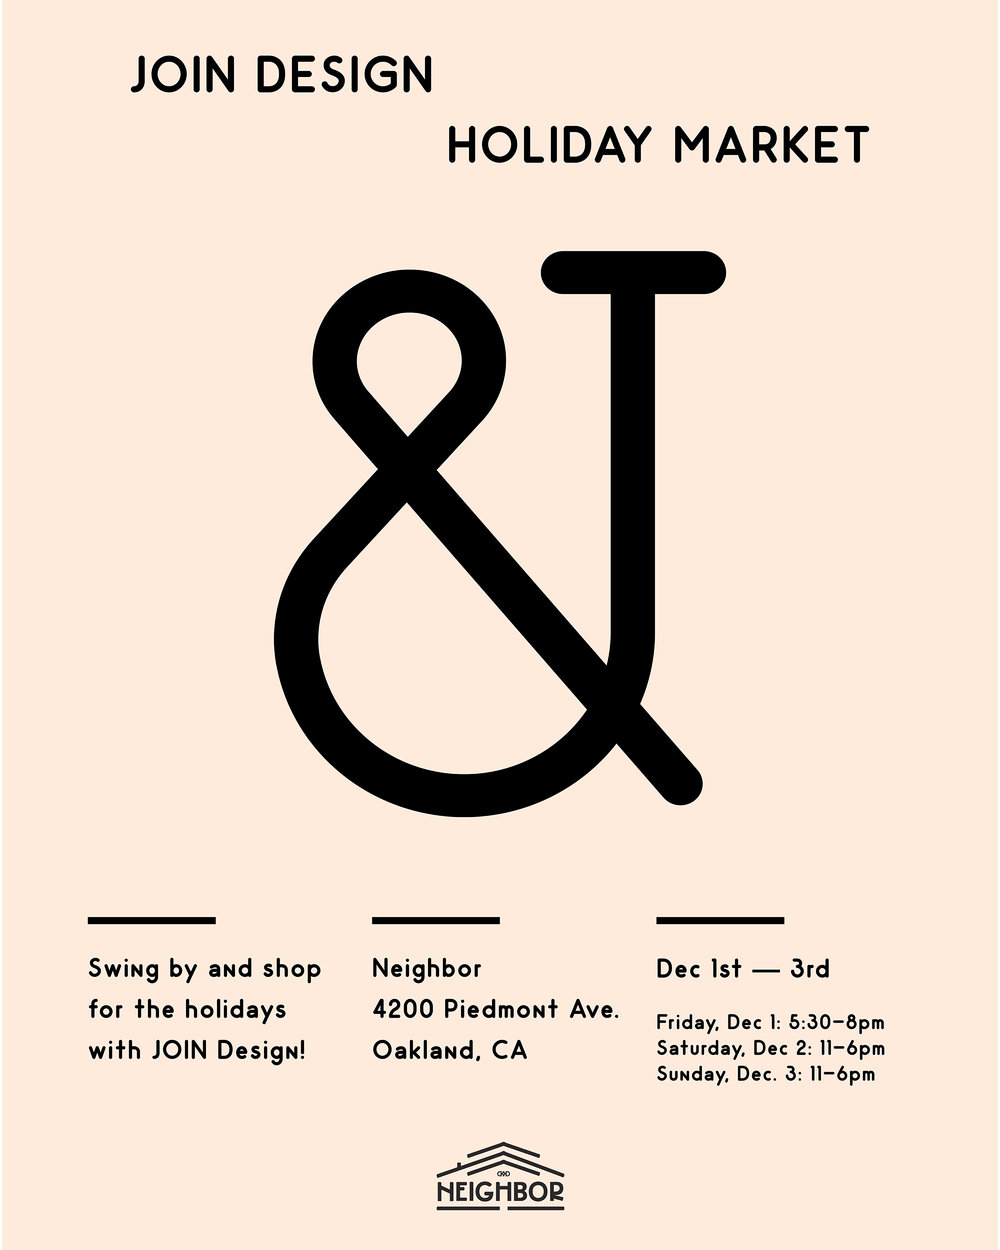 JOINHolidayMarket_Graphic-3.jpg